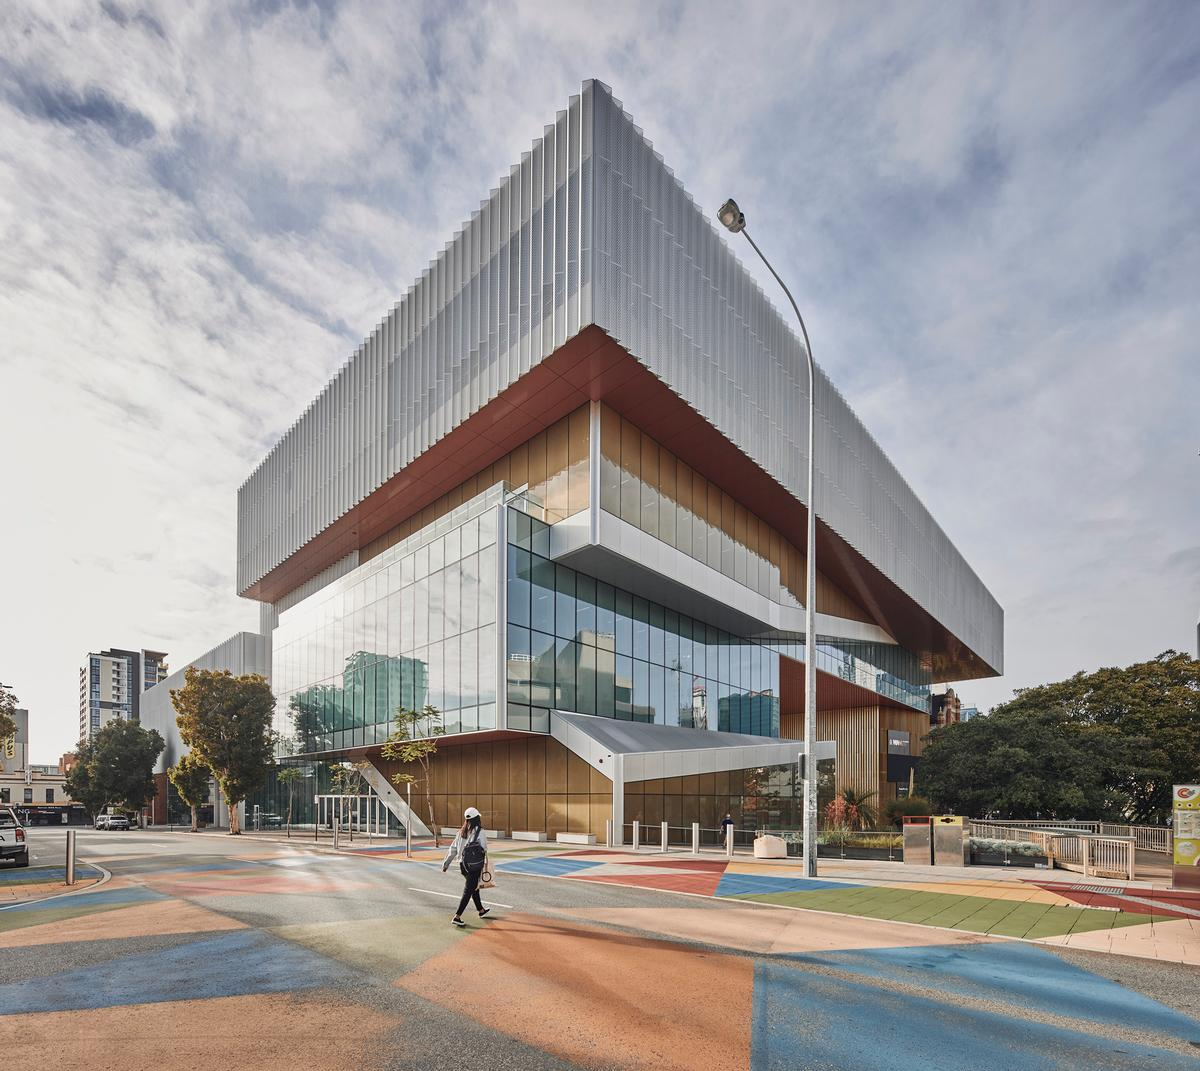 Perth's Boola Bardip museum opens in new AU$400m building designed by Hassell and OMA